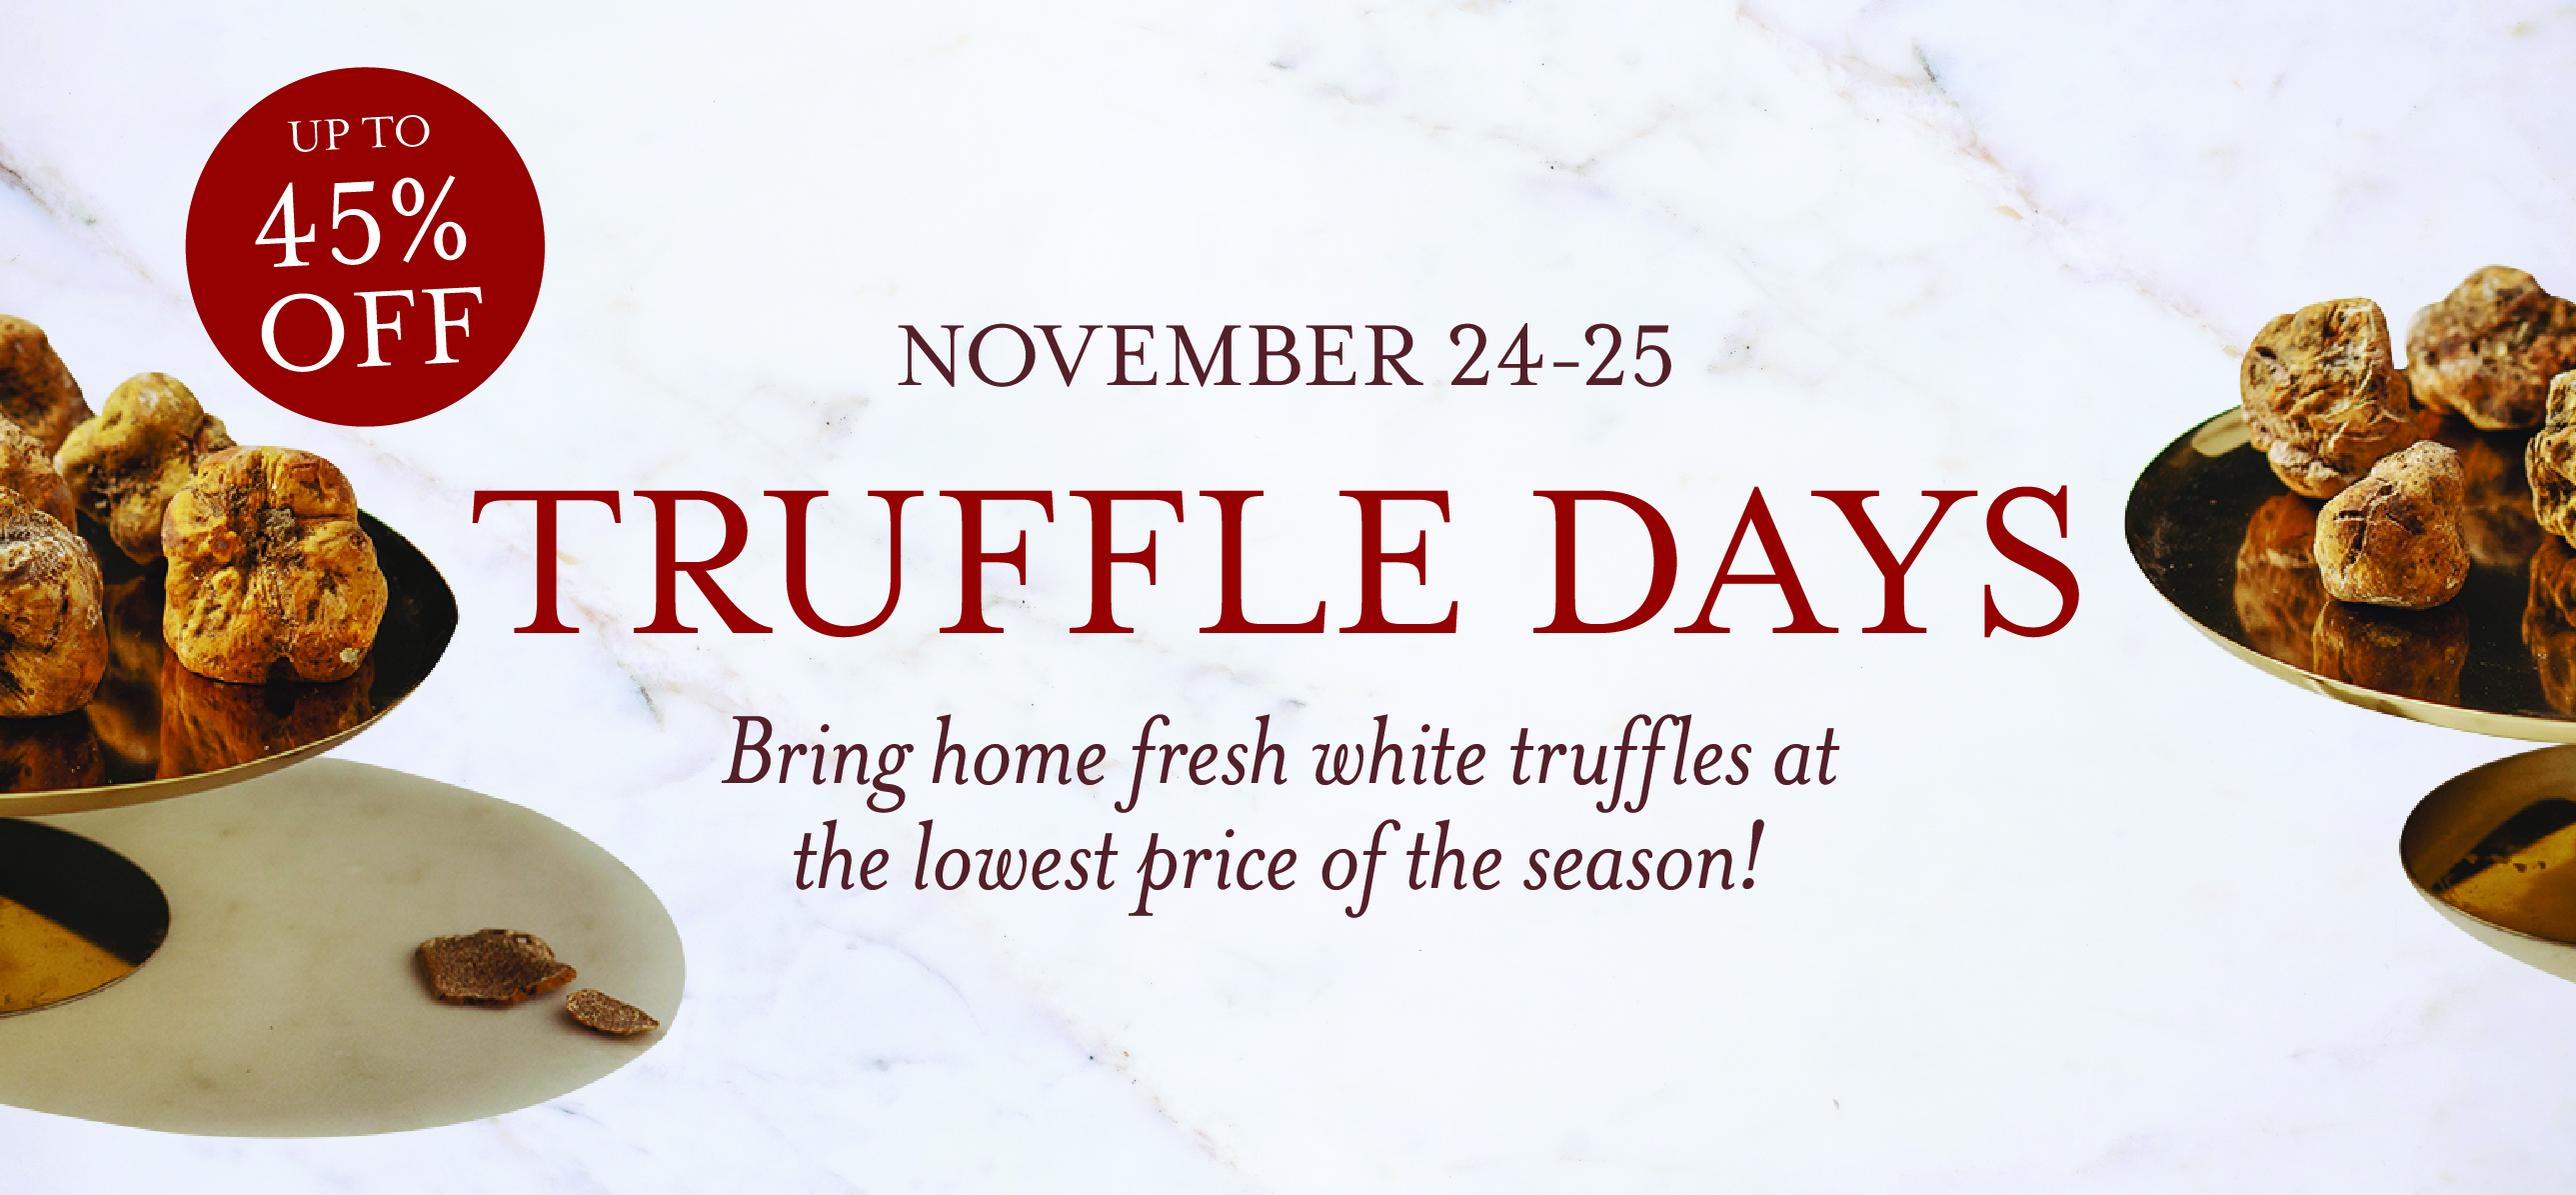 Truffle Days at Eataly NYC Downtown